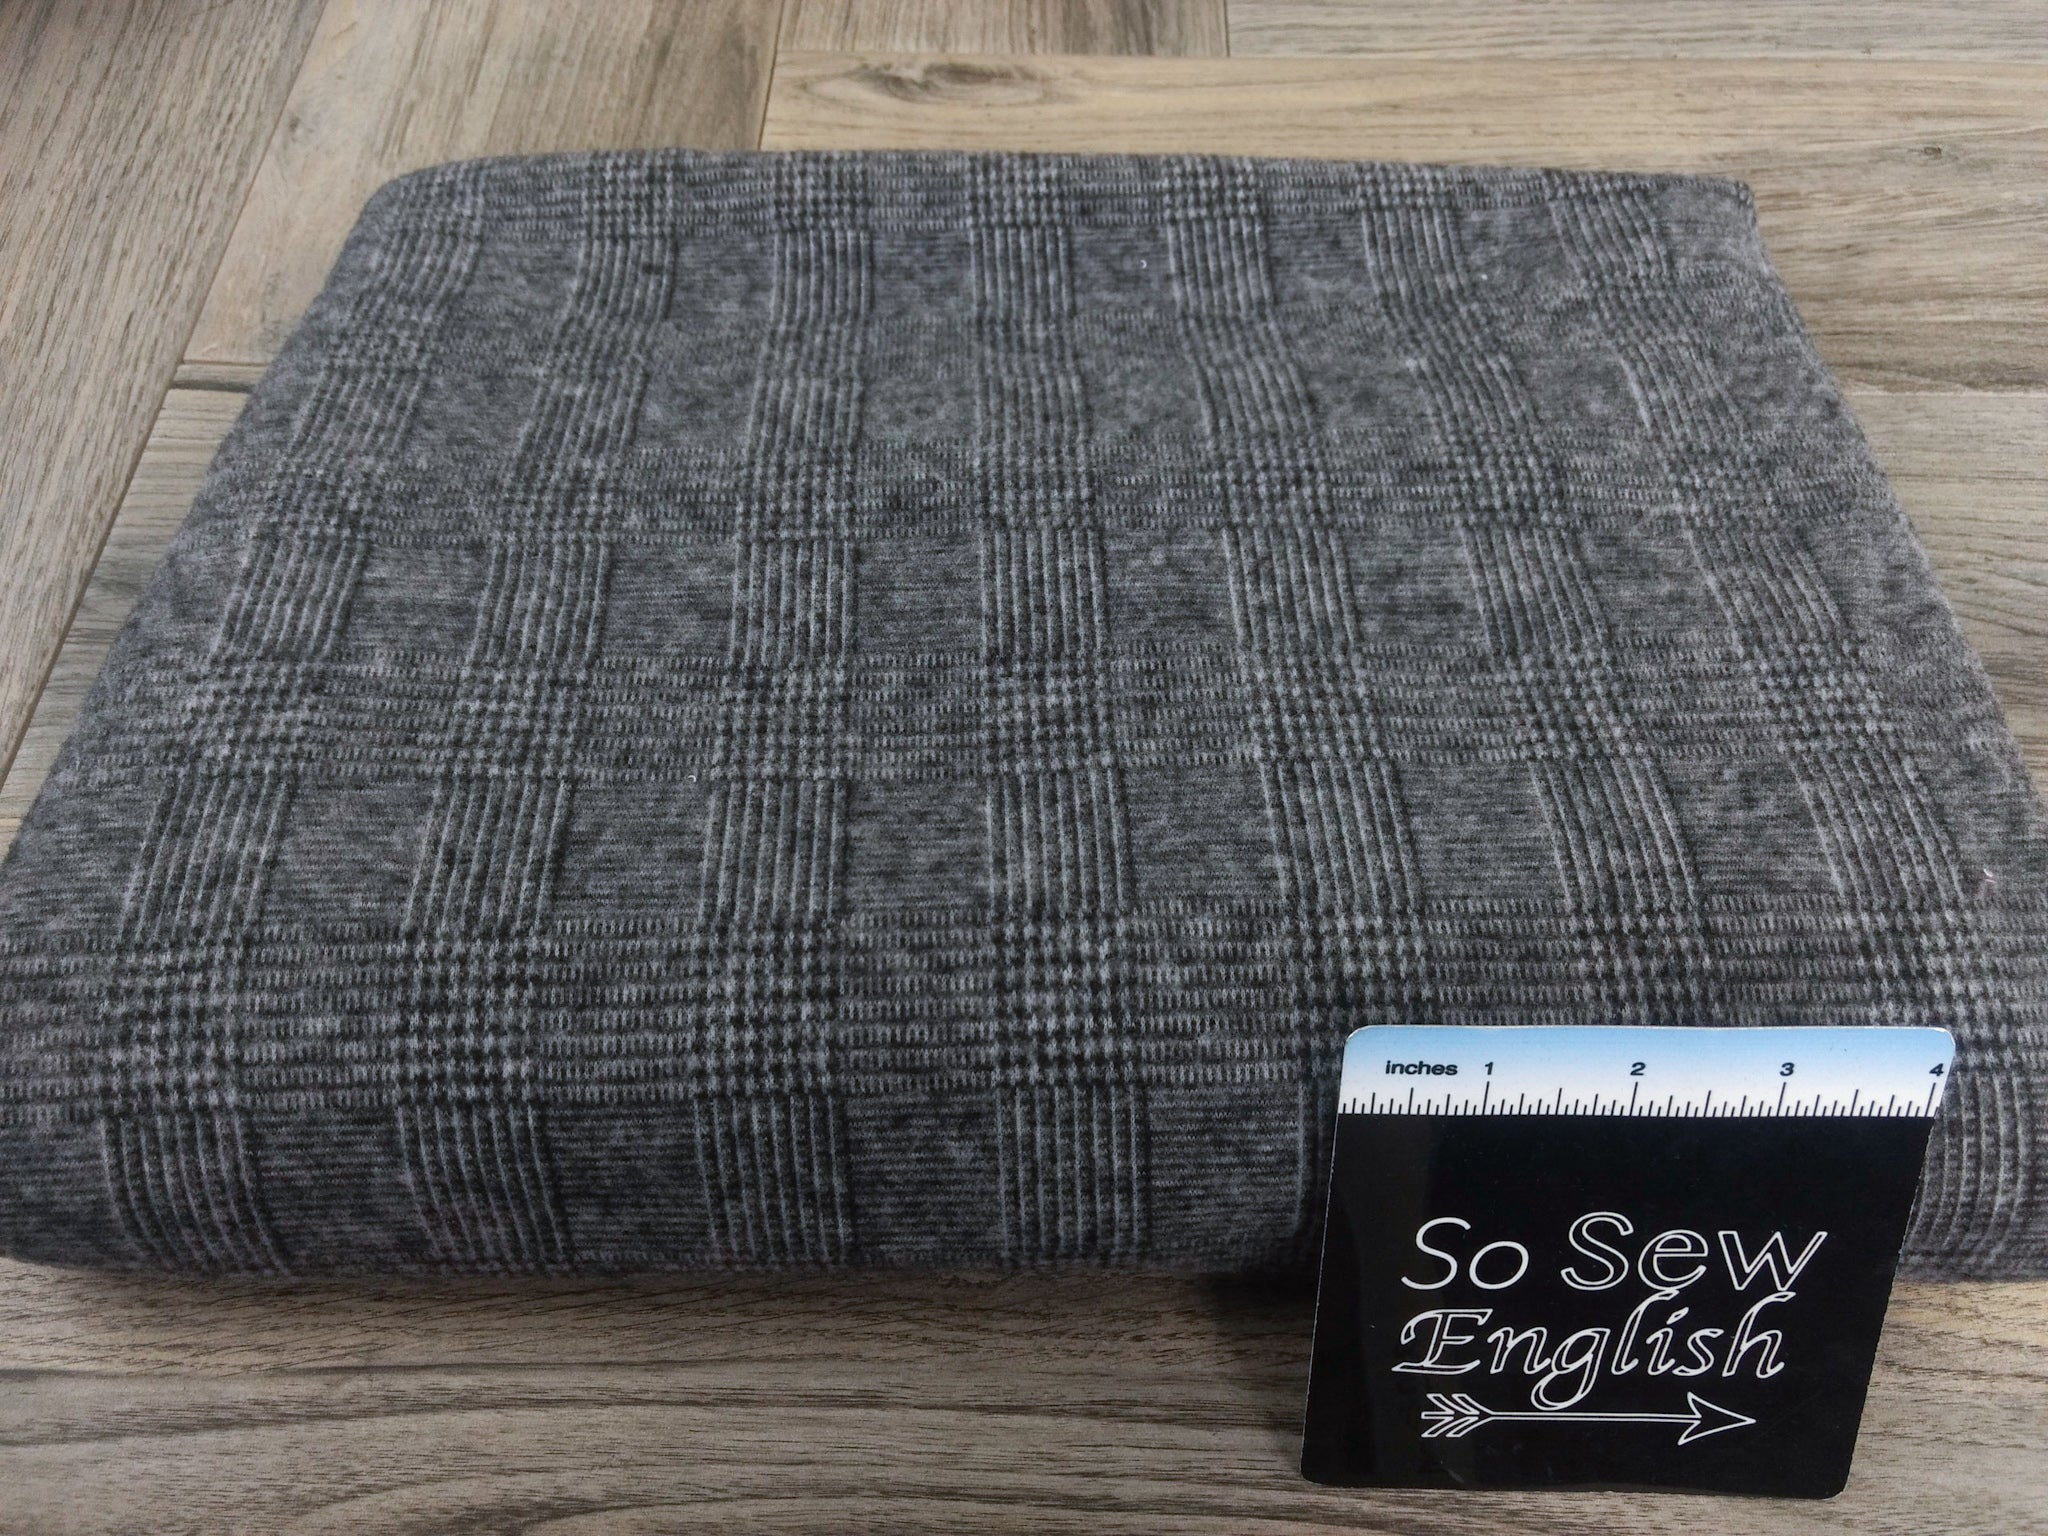 Heathered Box Check - Brushed DOUBLE Knit - By the yard